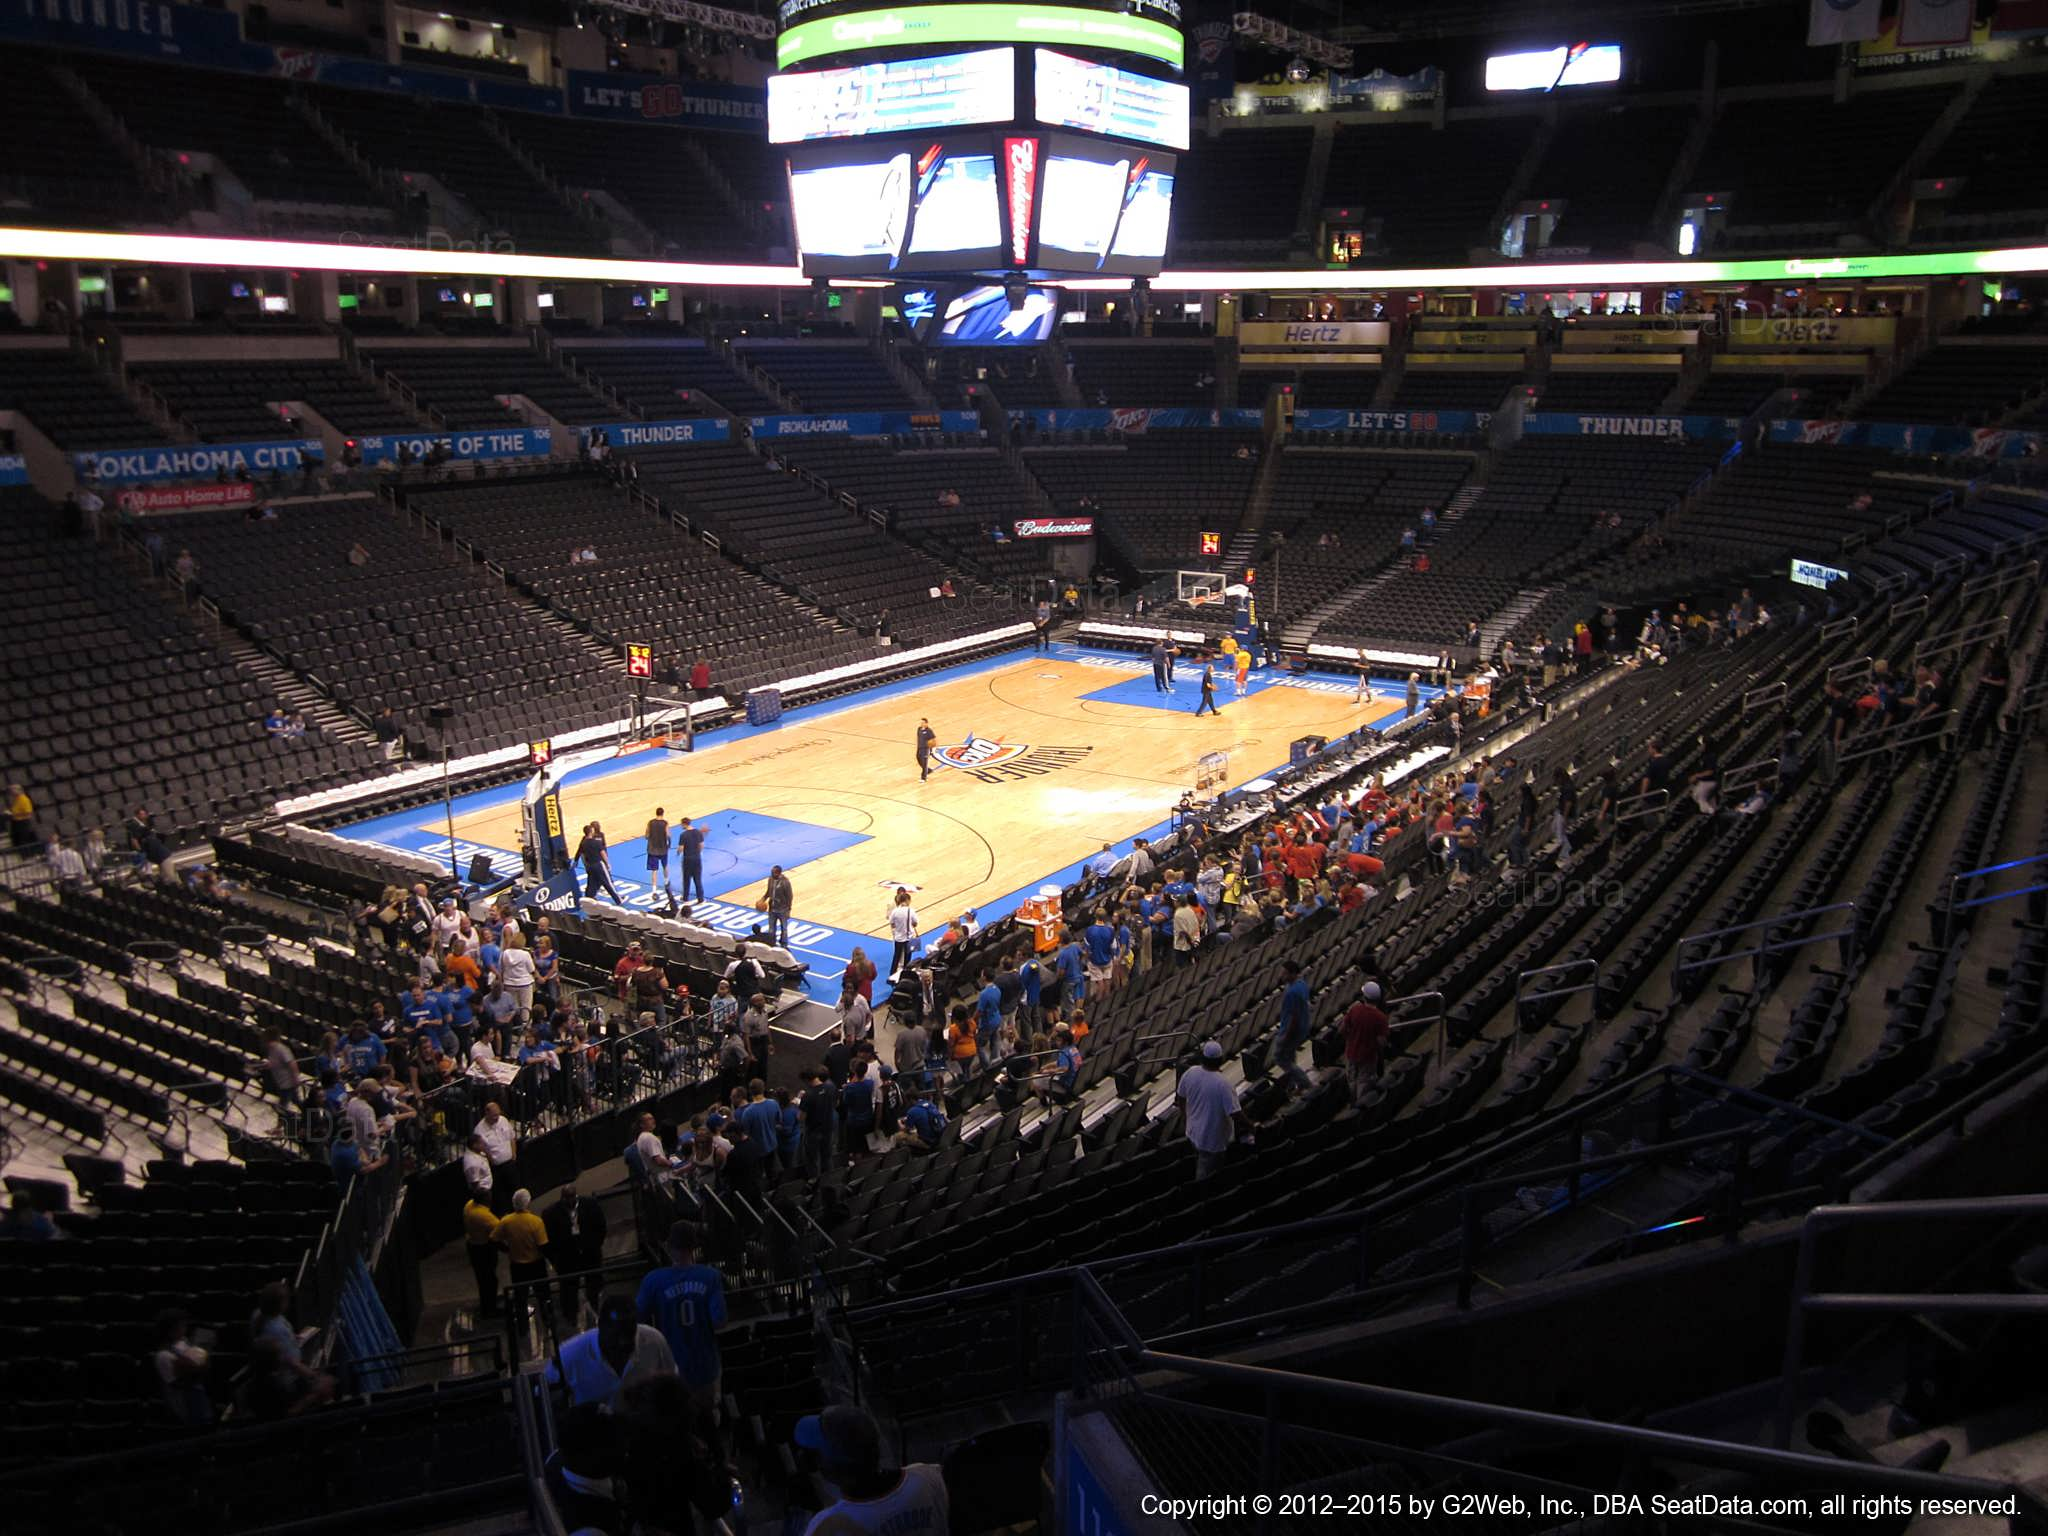 Seat view from section 227 at Chesapeake Energy Arena, home of the Oklahoma City Thunder